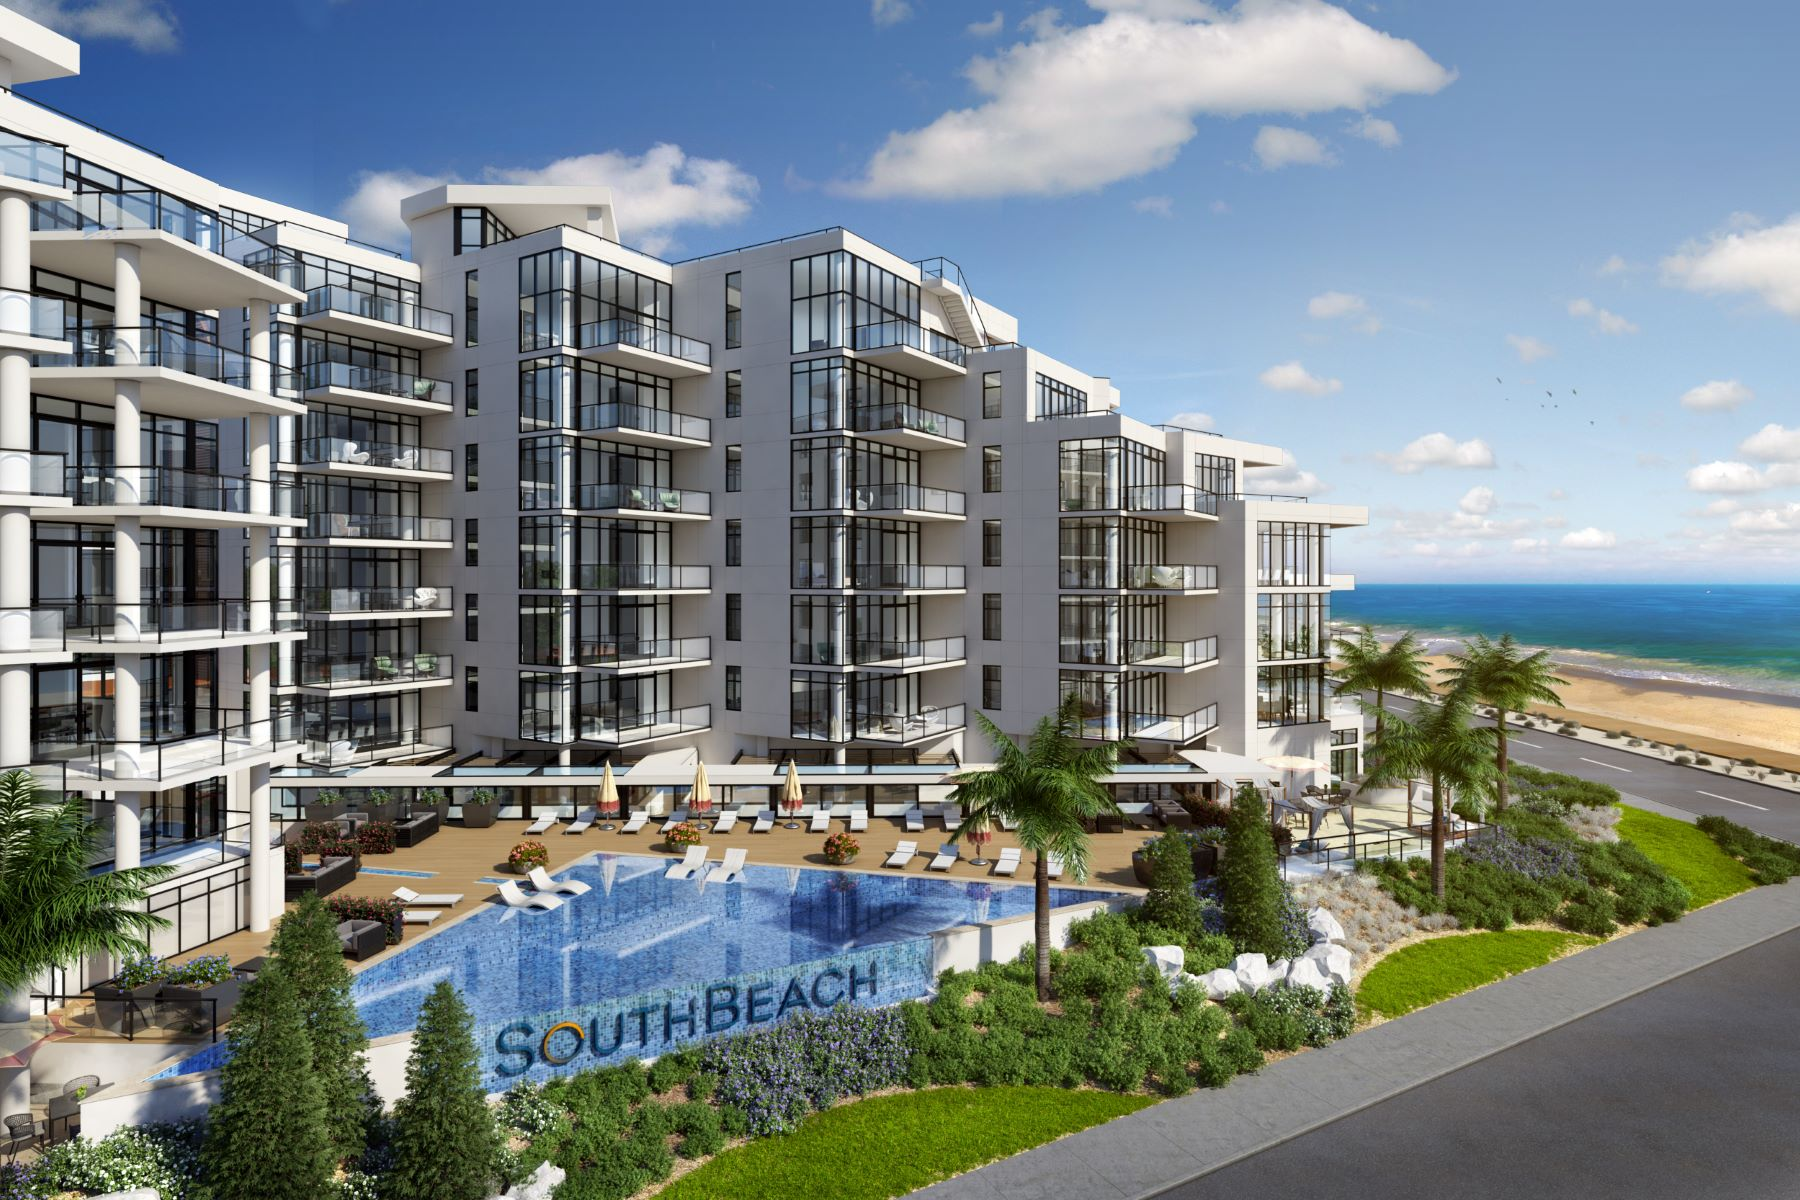 Condominiums for Sale at South Beach at Long Branch 350 Ocean Avenue 506 Long Branch, New Jersey 07740 United States